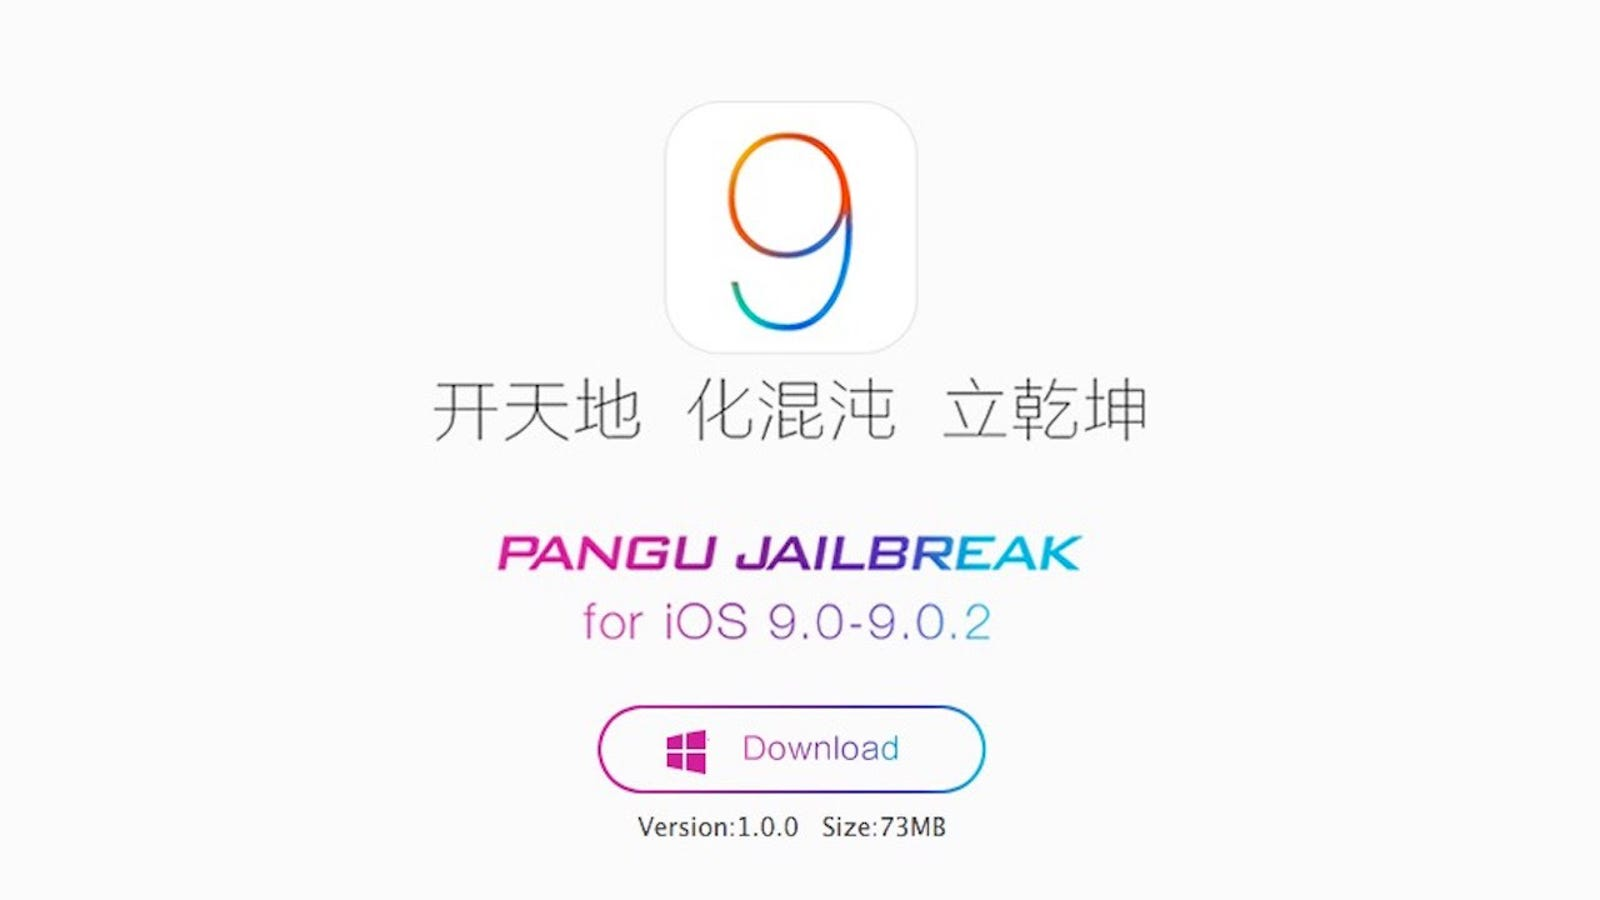 How to Jailbreak Your iPhone: The Always Up-to-Date Guide [iOS 9]